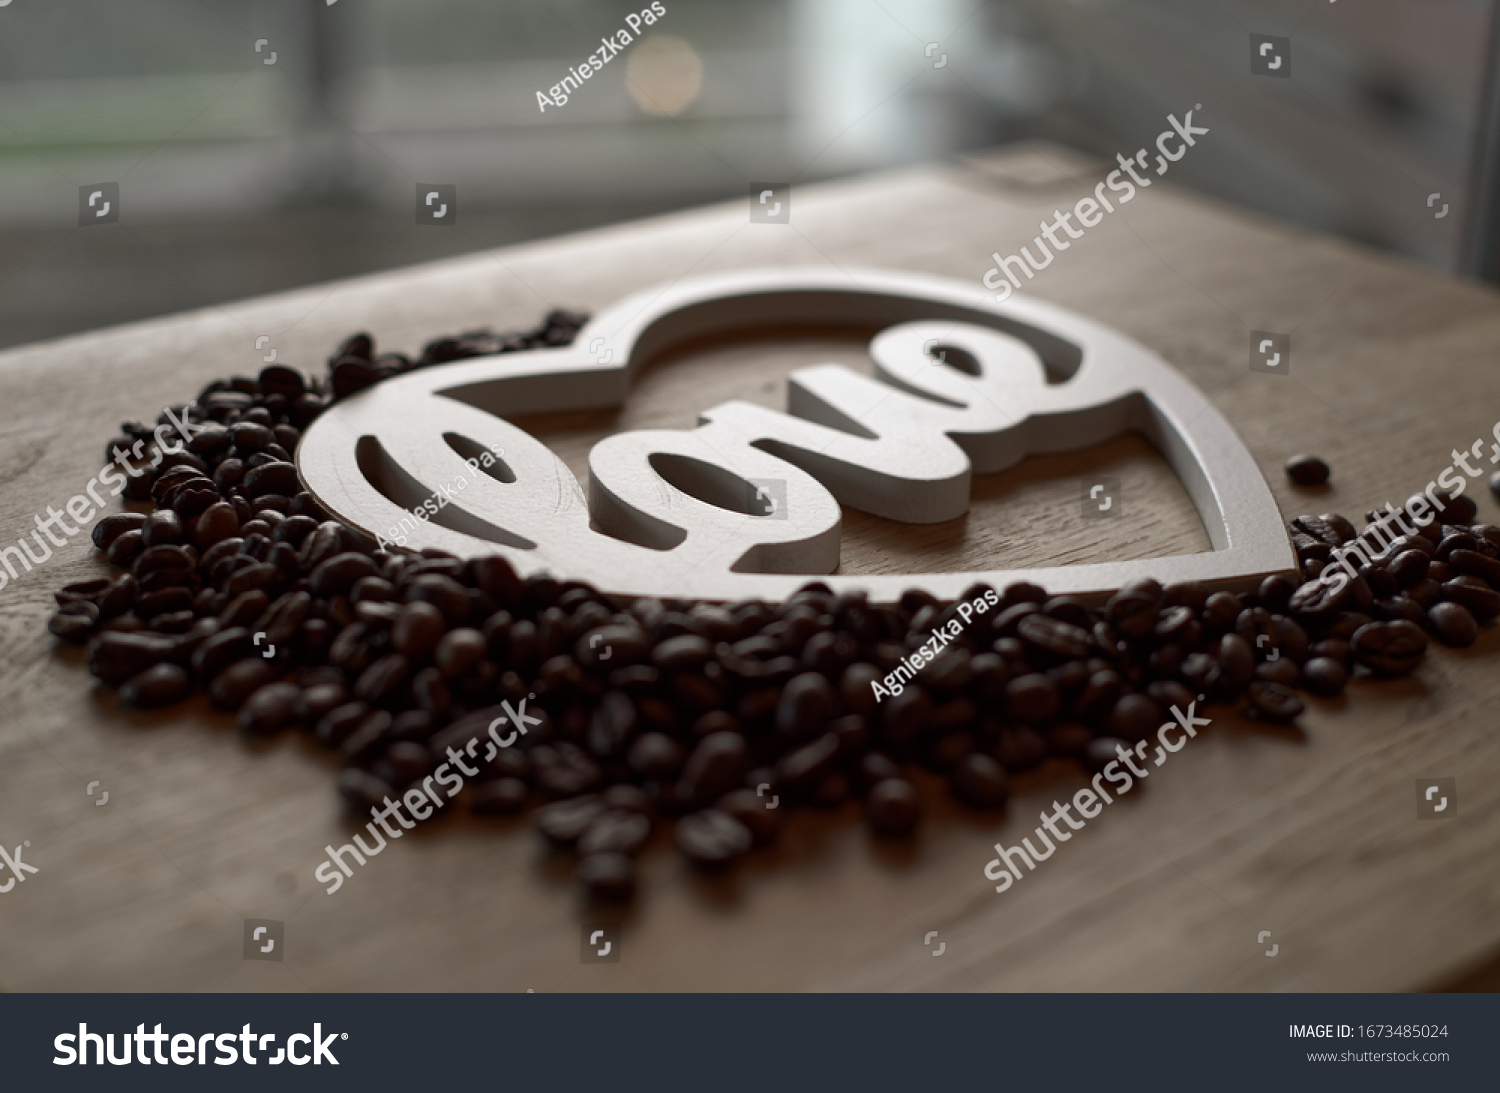 stock-photo-close-up-view-of-coffee-bean